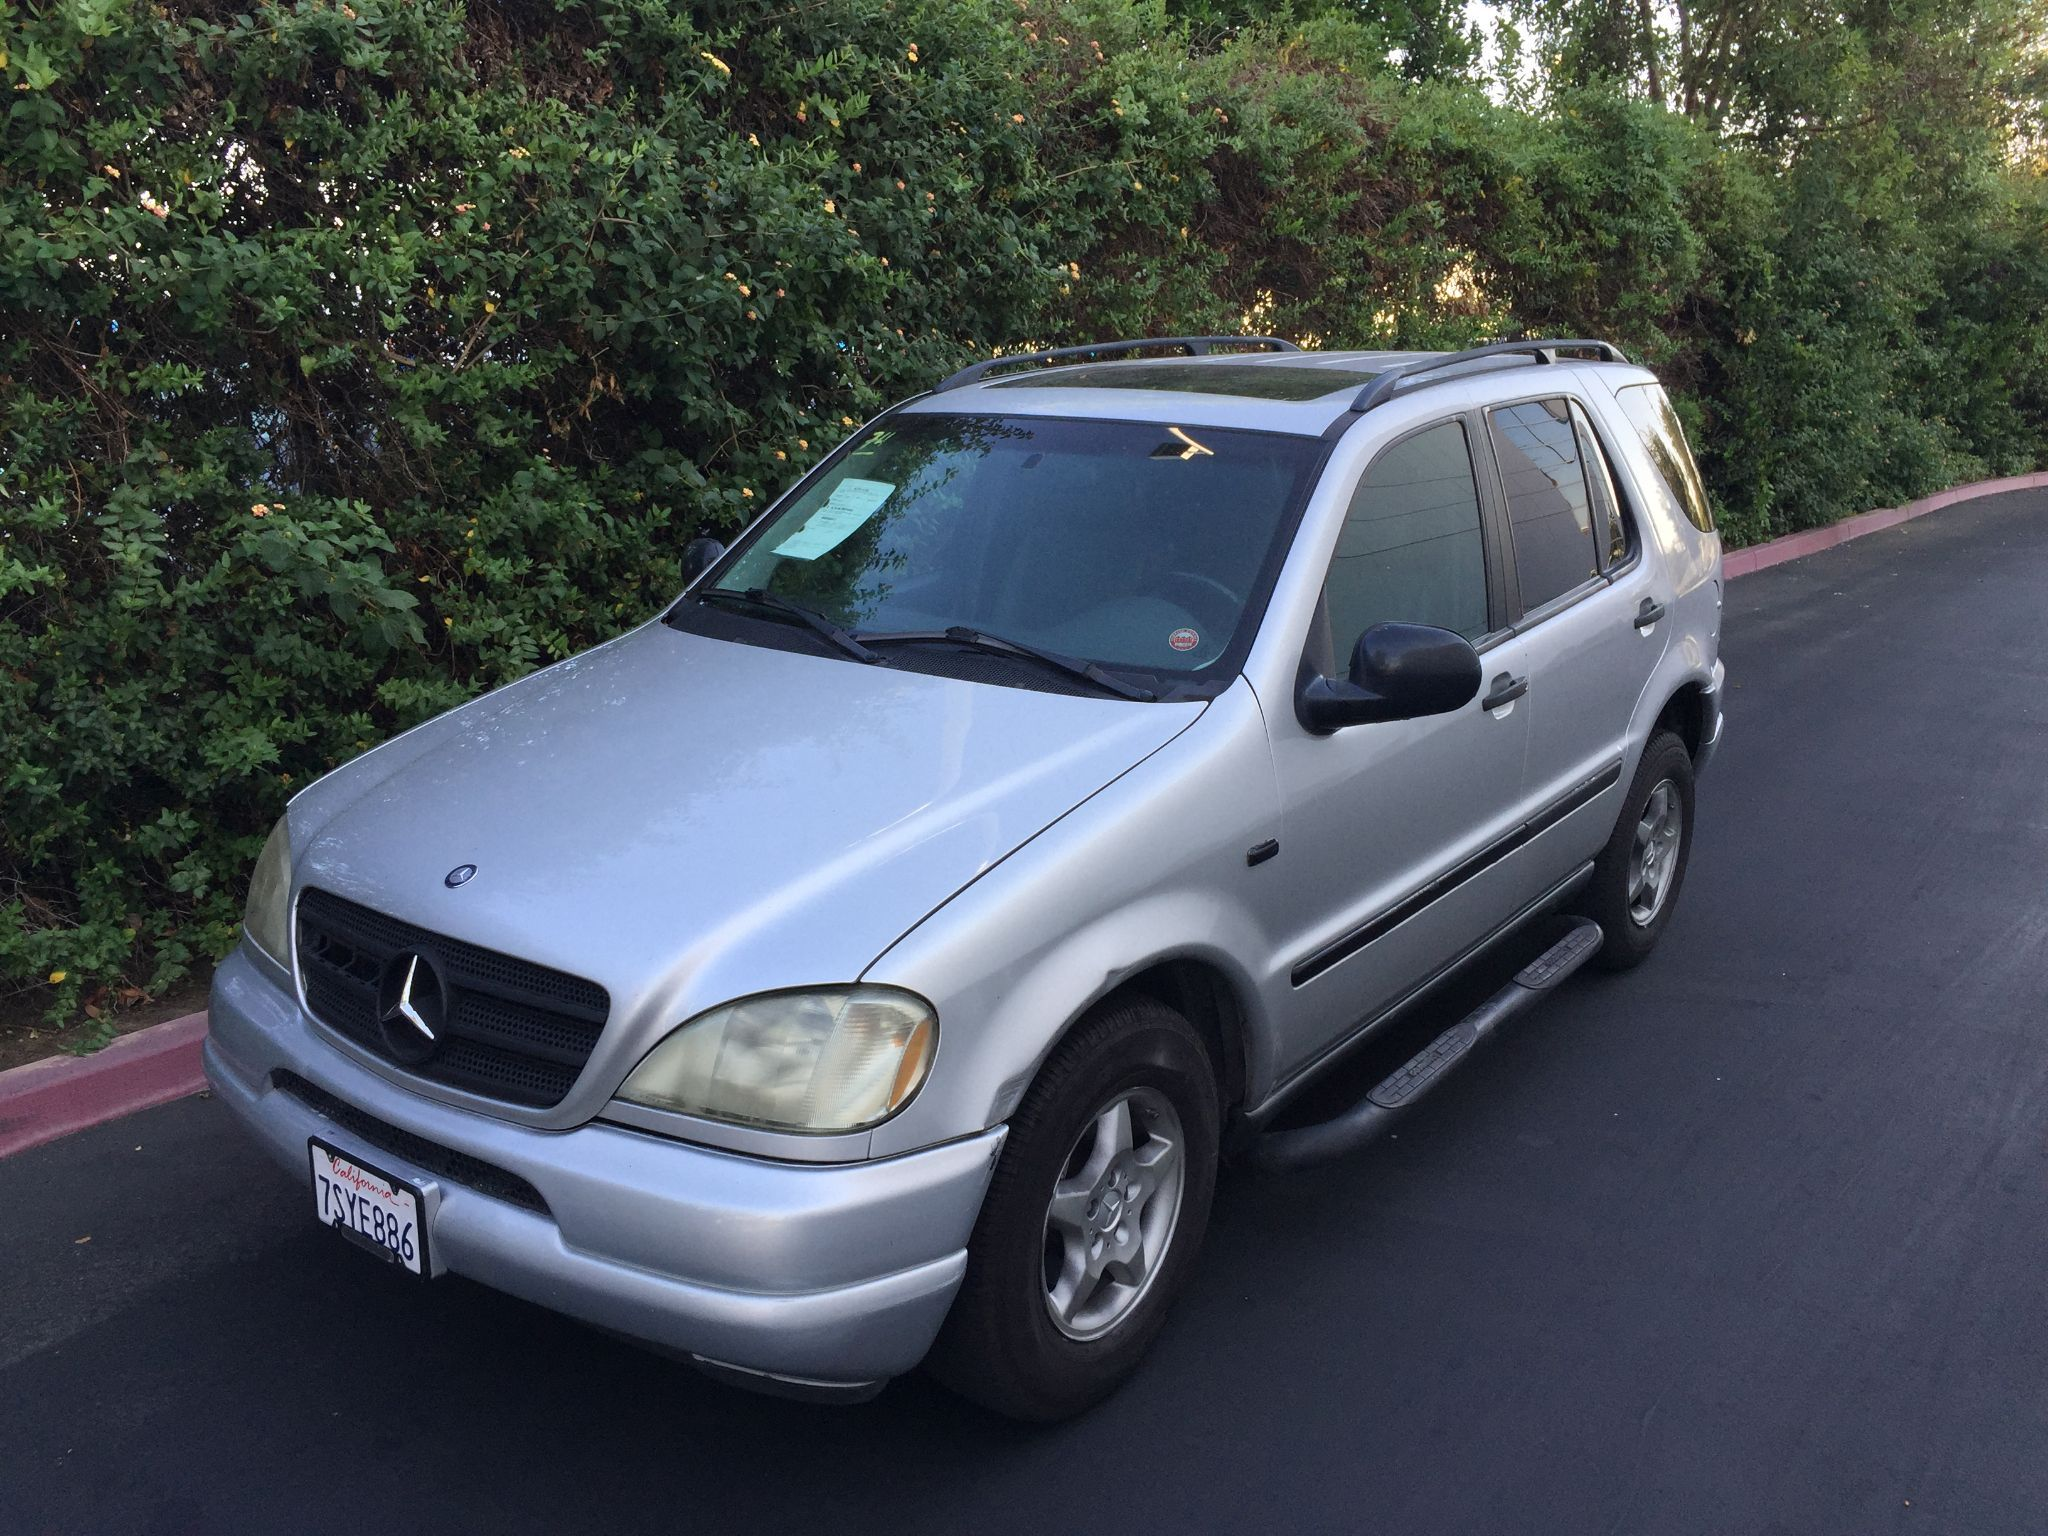 used 1999 mercedes benz ml320 at city cars warehouse inc. Black Bedroom Furniture Sets. Home Design Ideas